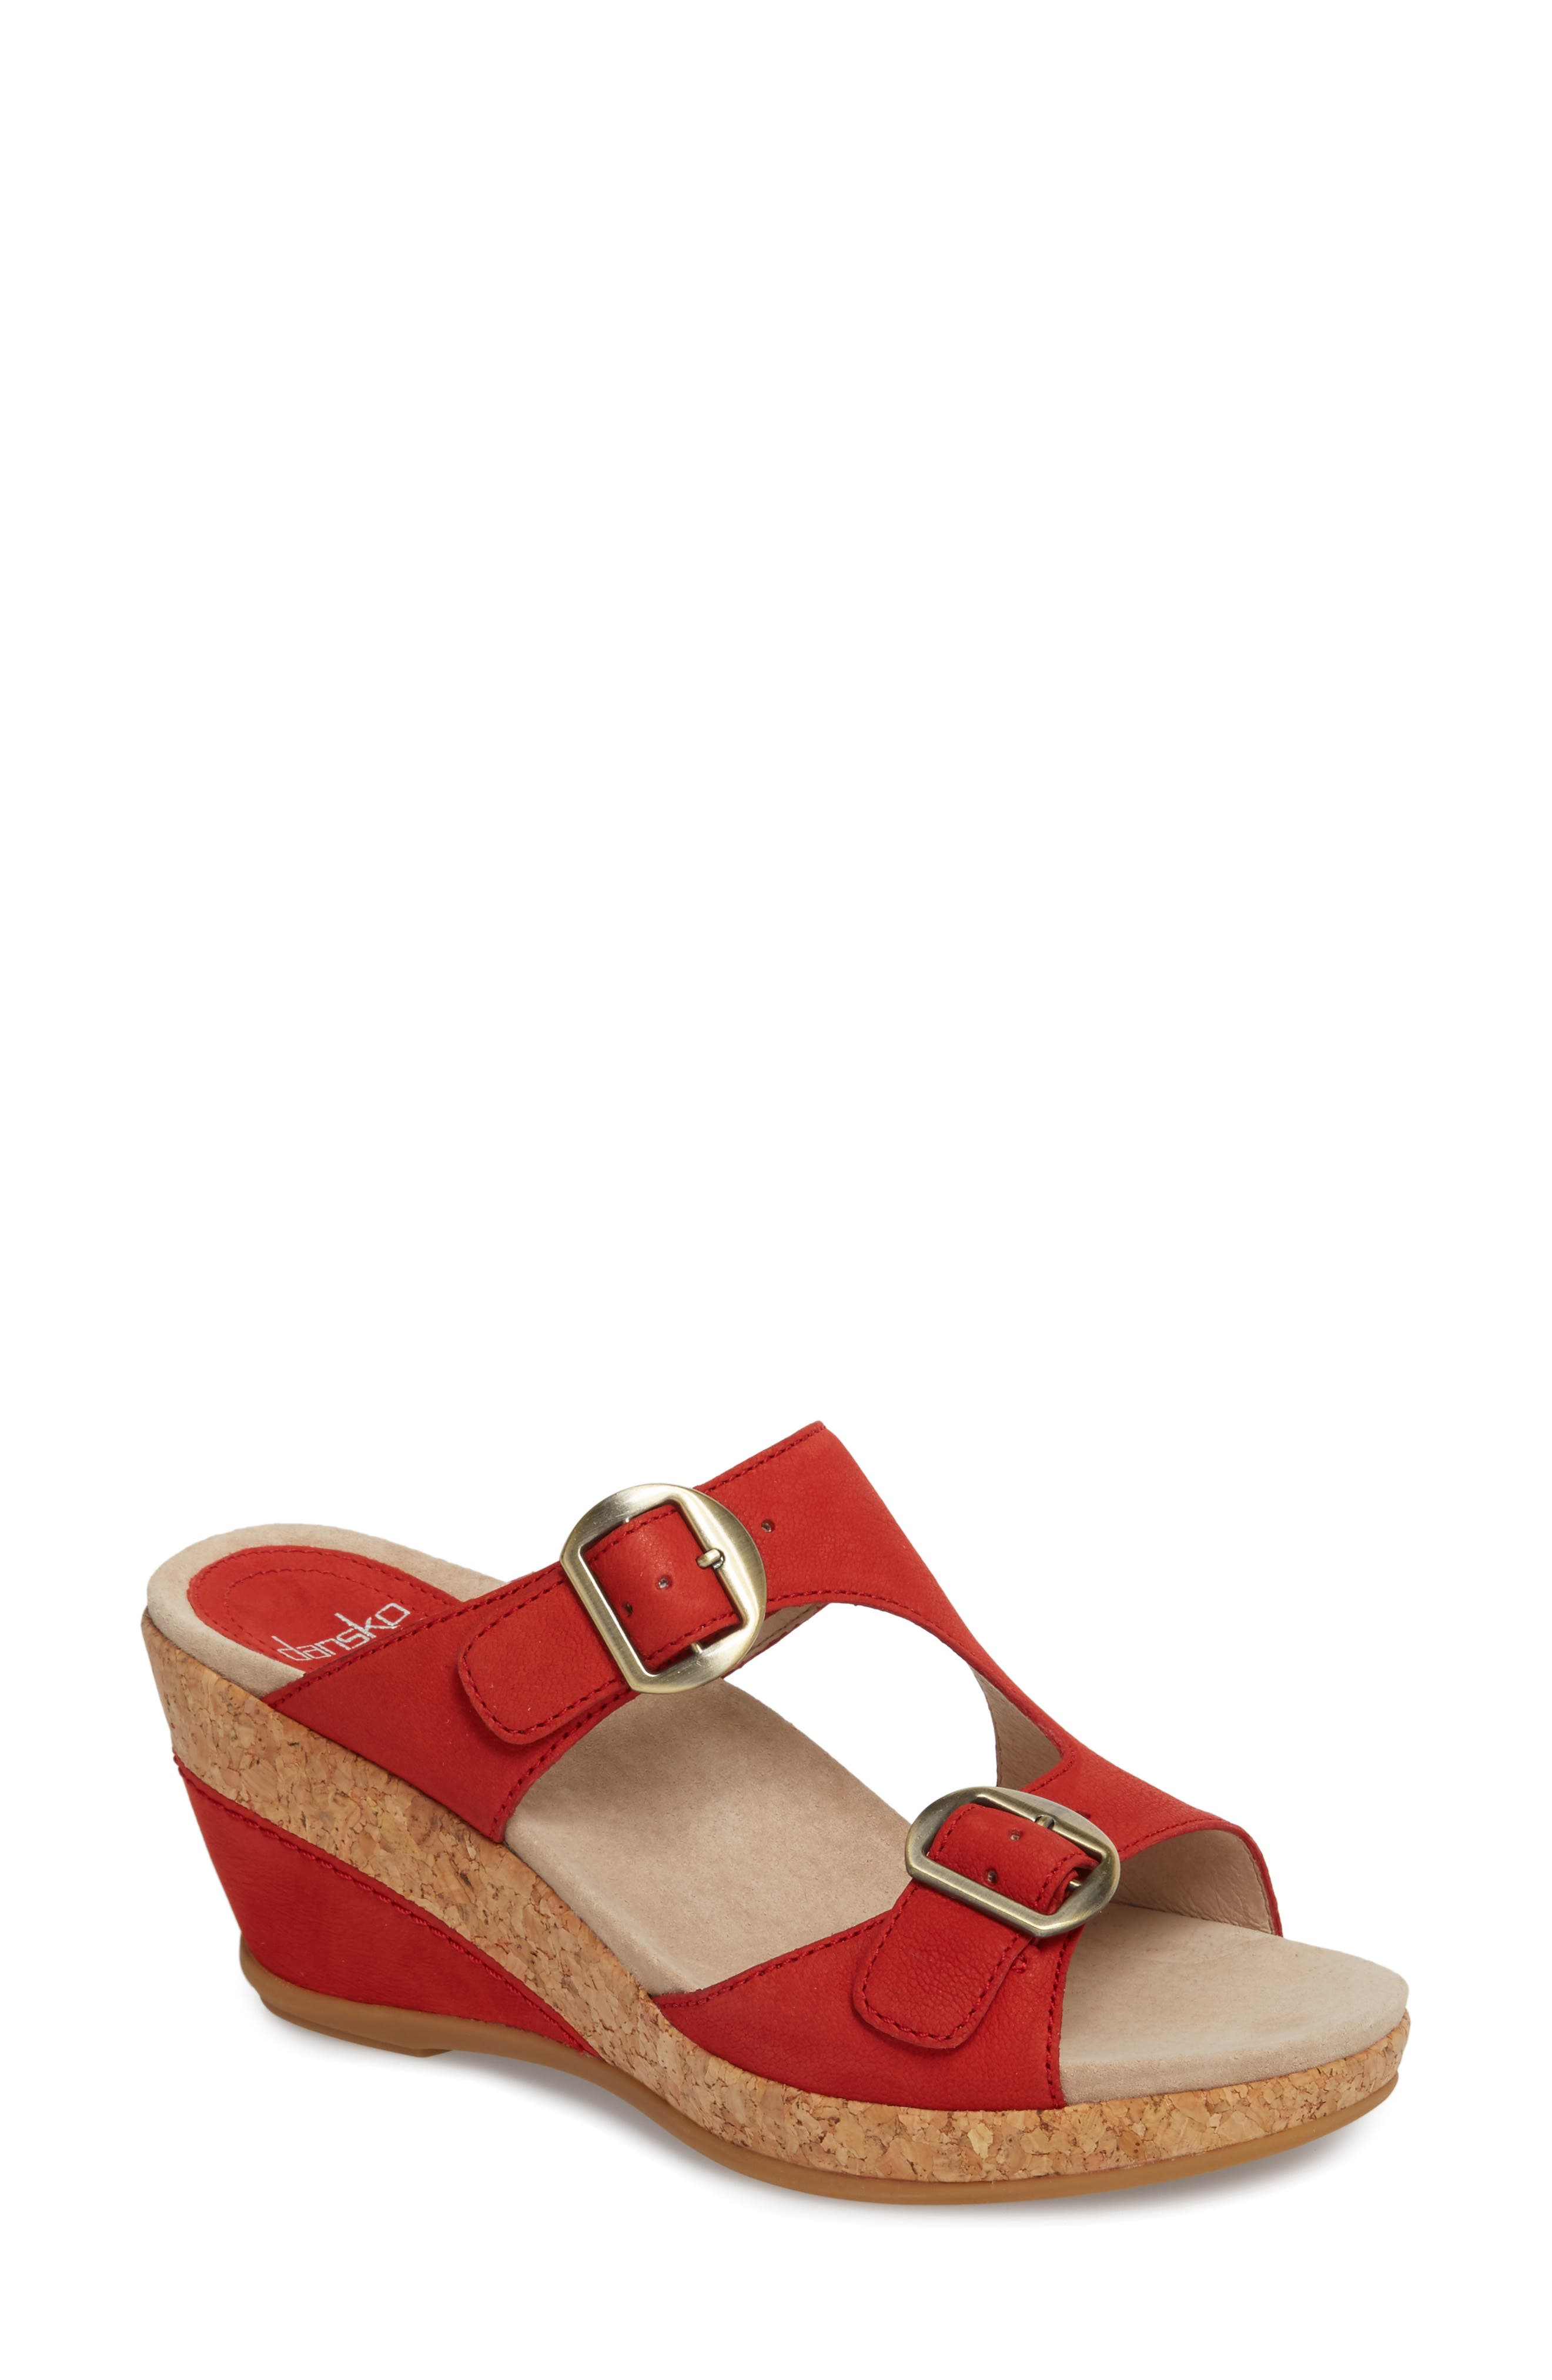 Carla Wedge Slide Sandal,                             Main thumbnail 1, color,                             TOMATO MILLED NUBUCK LEATHER